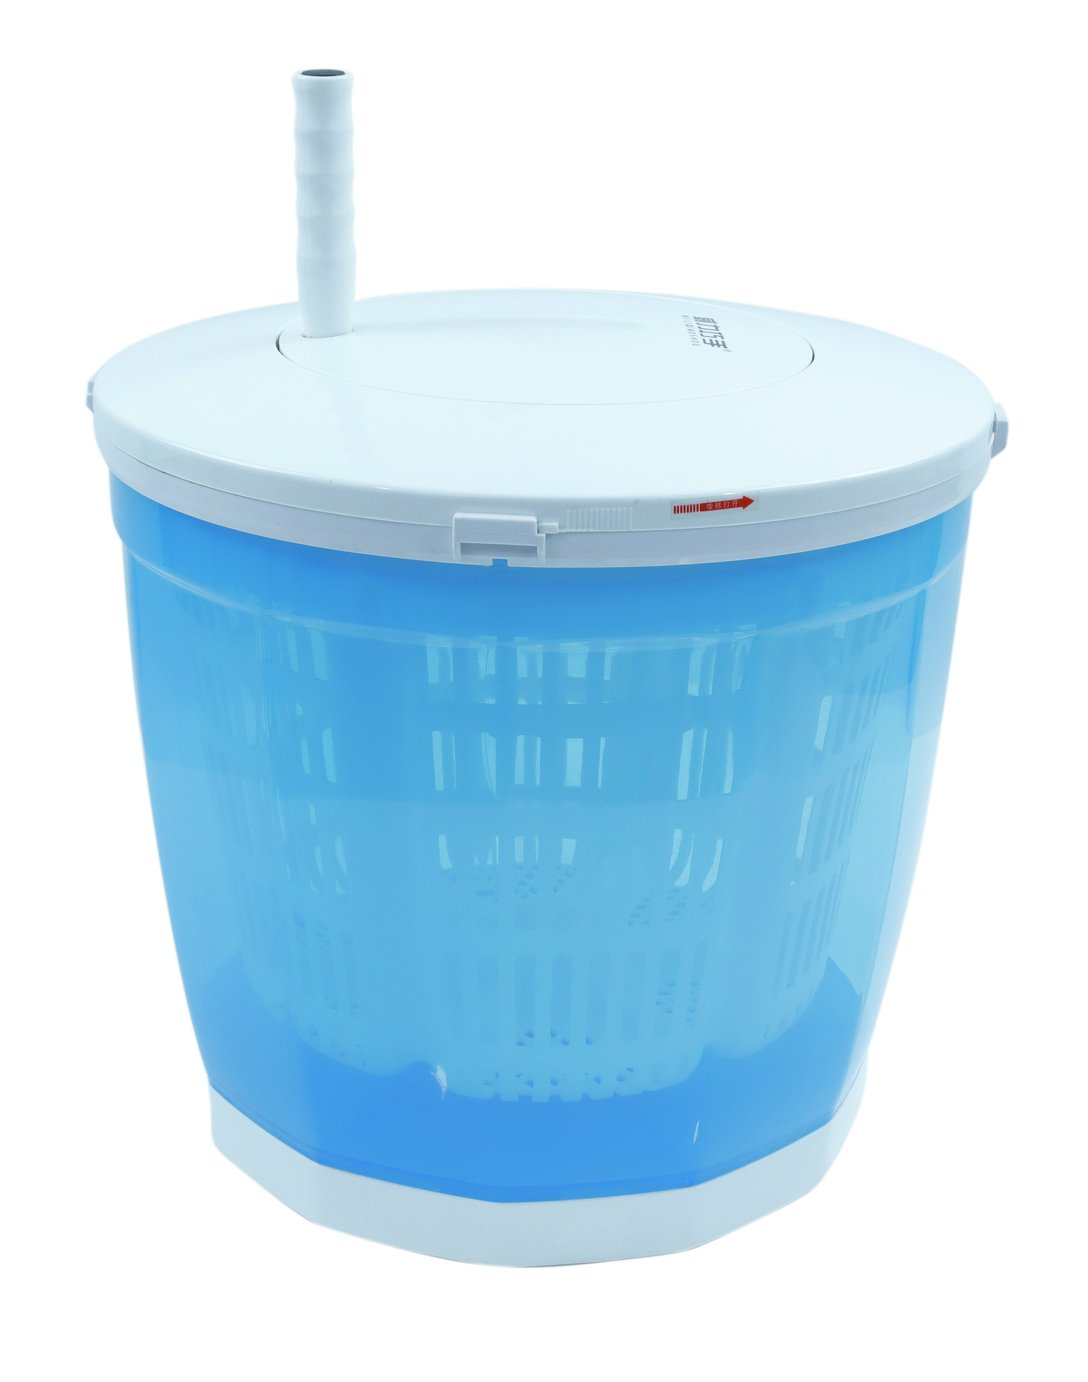 Leisurewize 2.5L Portable Washing Machine